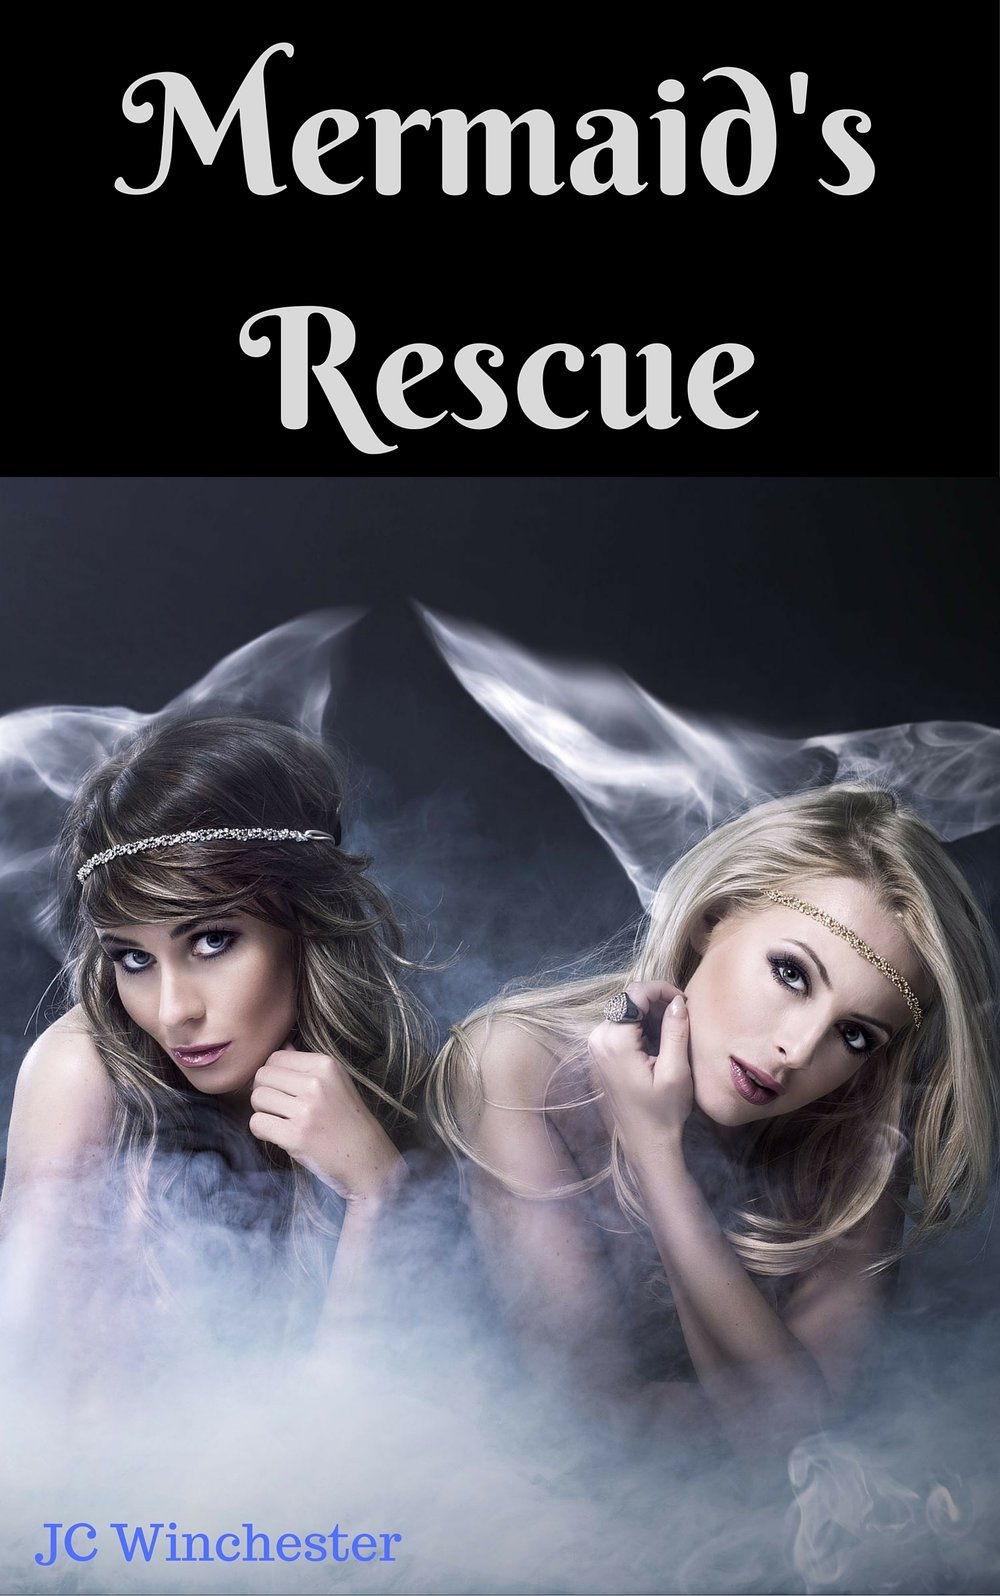 Mermaid's Rescue